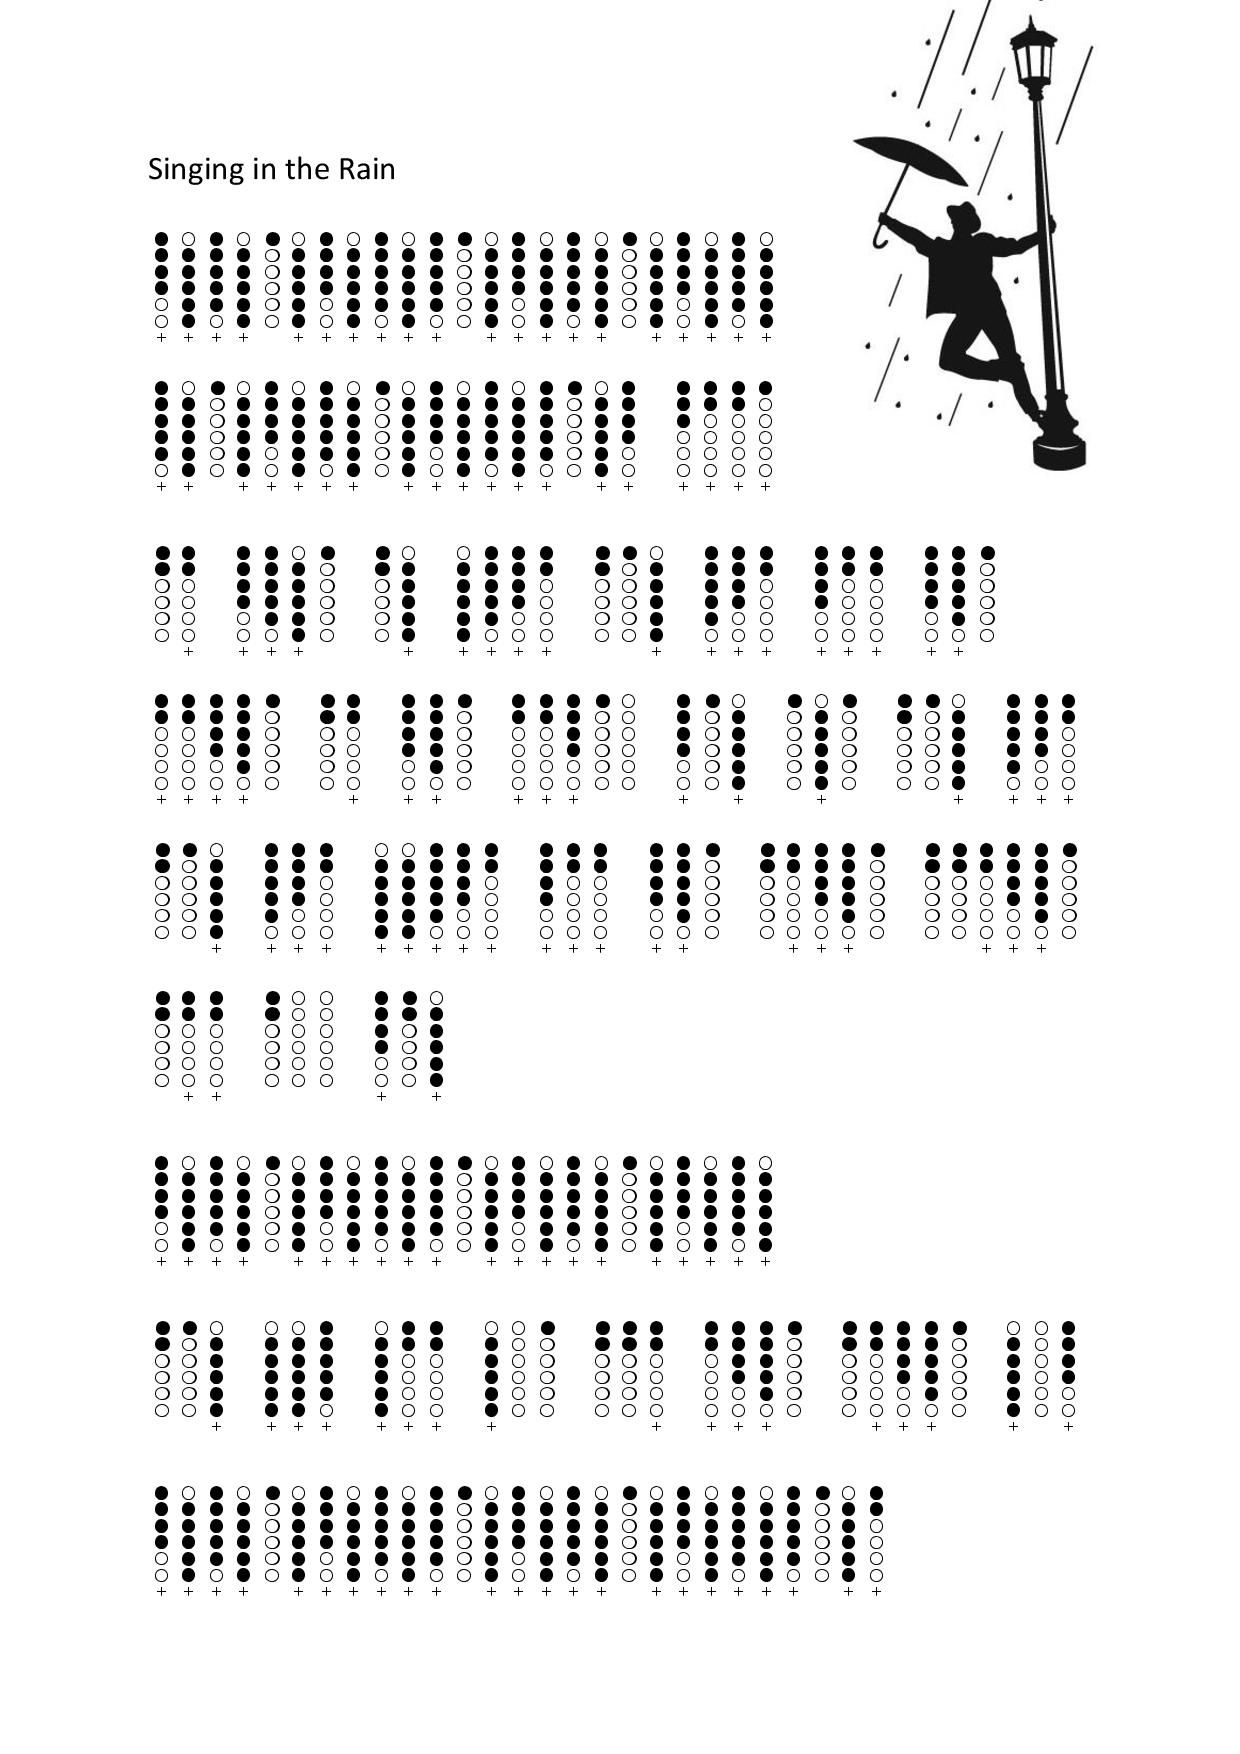 Singing in the Rain tabs for Tin Whistle | Partition pour ...